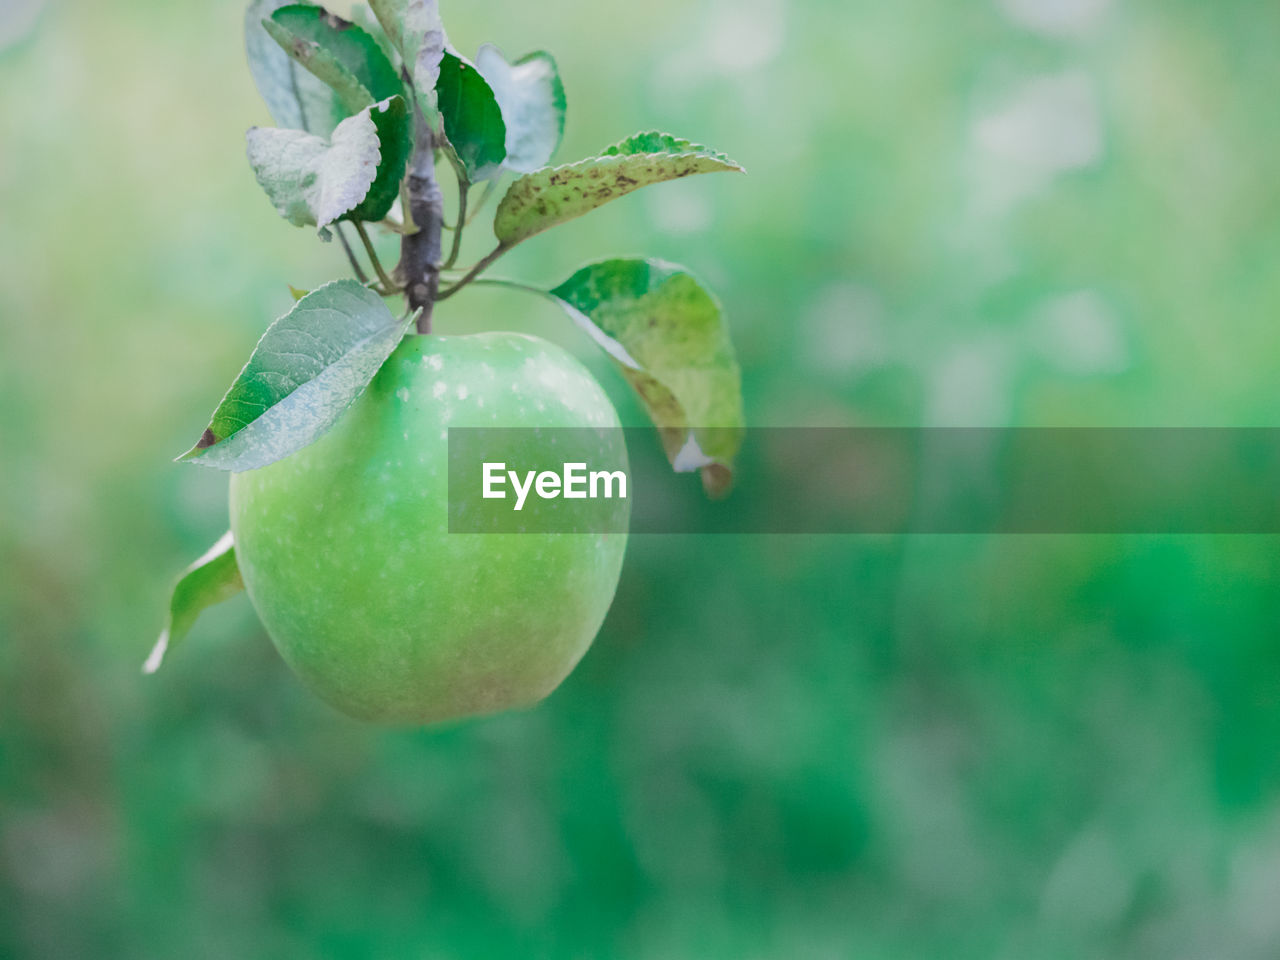 fruit, plant, freshness, growth, green color, food, food and drink, healthy eating, close-up, no people, focus on foreground, nature, leaf, plant part, day, beauty in nature, outdoors, wellbeing, tree, selective focus